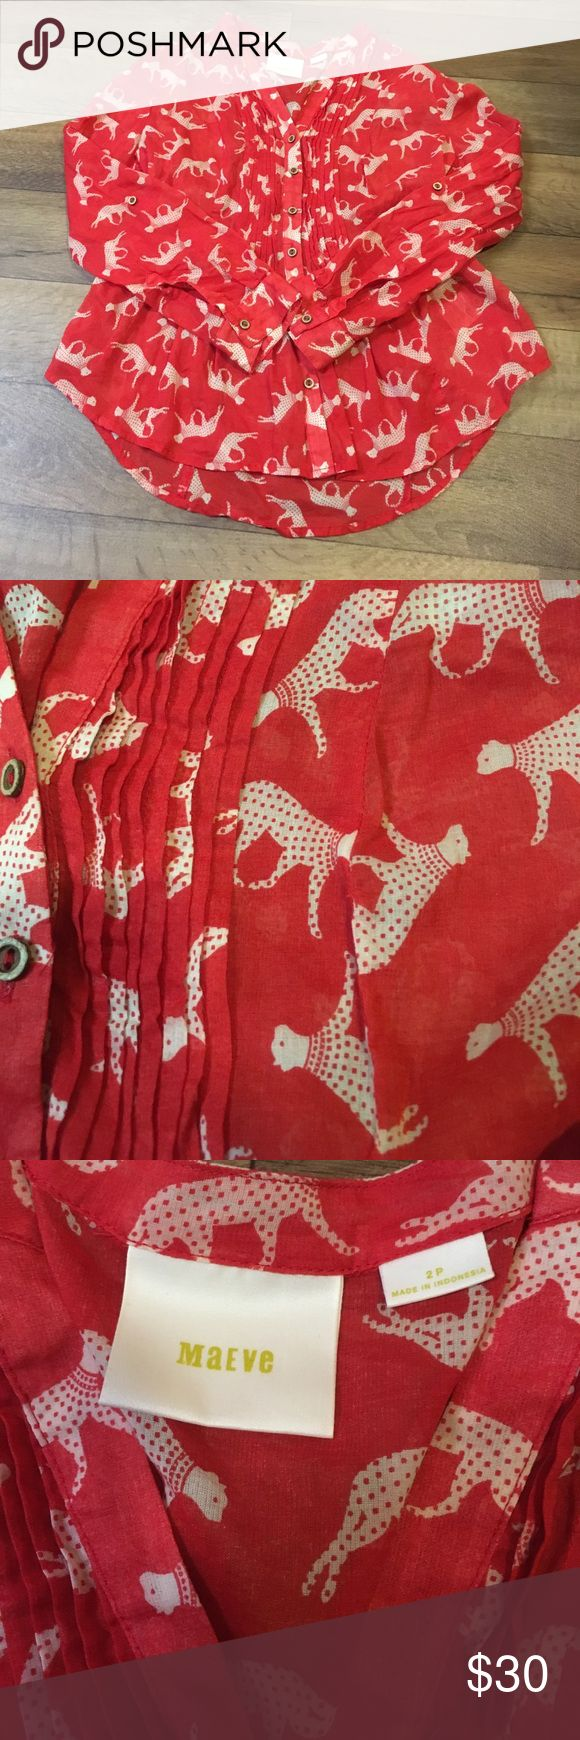 Anthropologie Blouse Anthropologie Brand Maeve lightweight cheetah Blouse in size 2P Anthropologie Tops Blouses